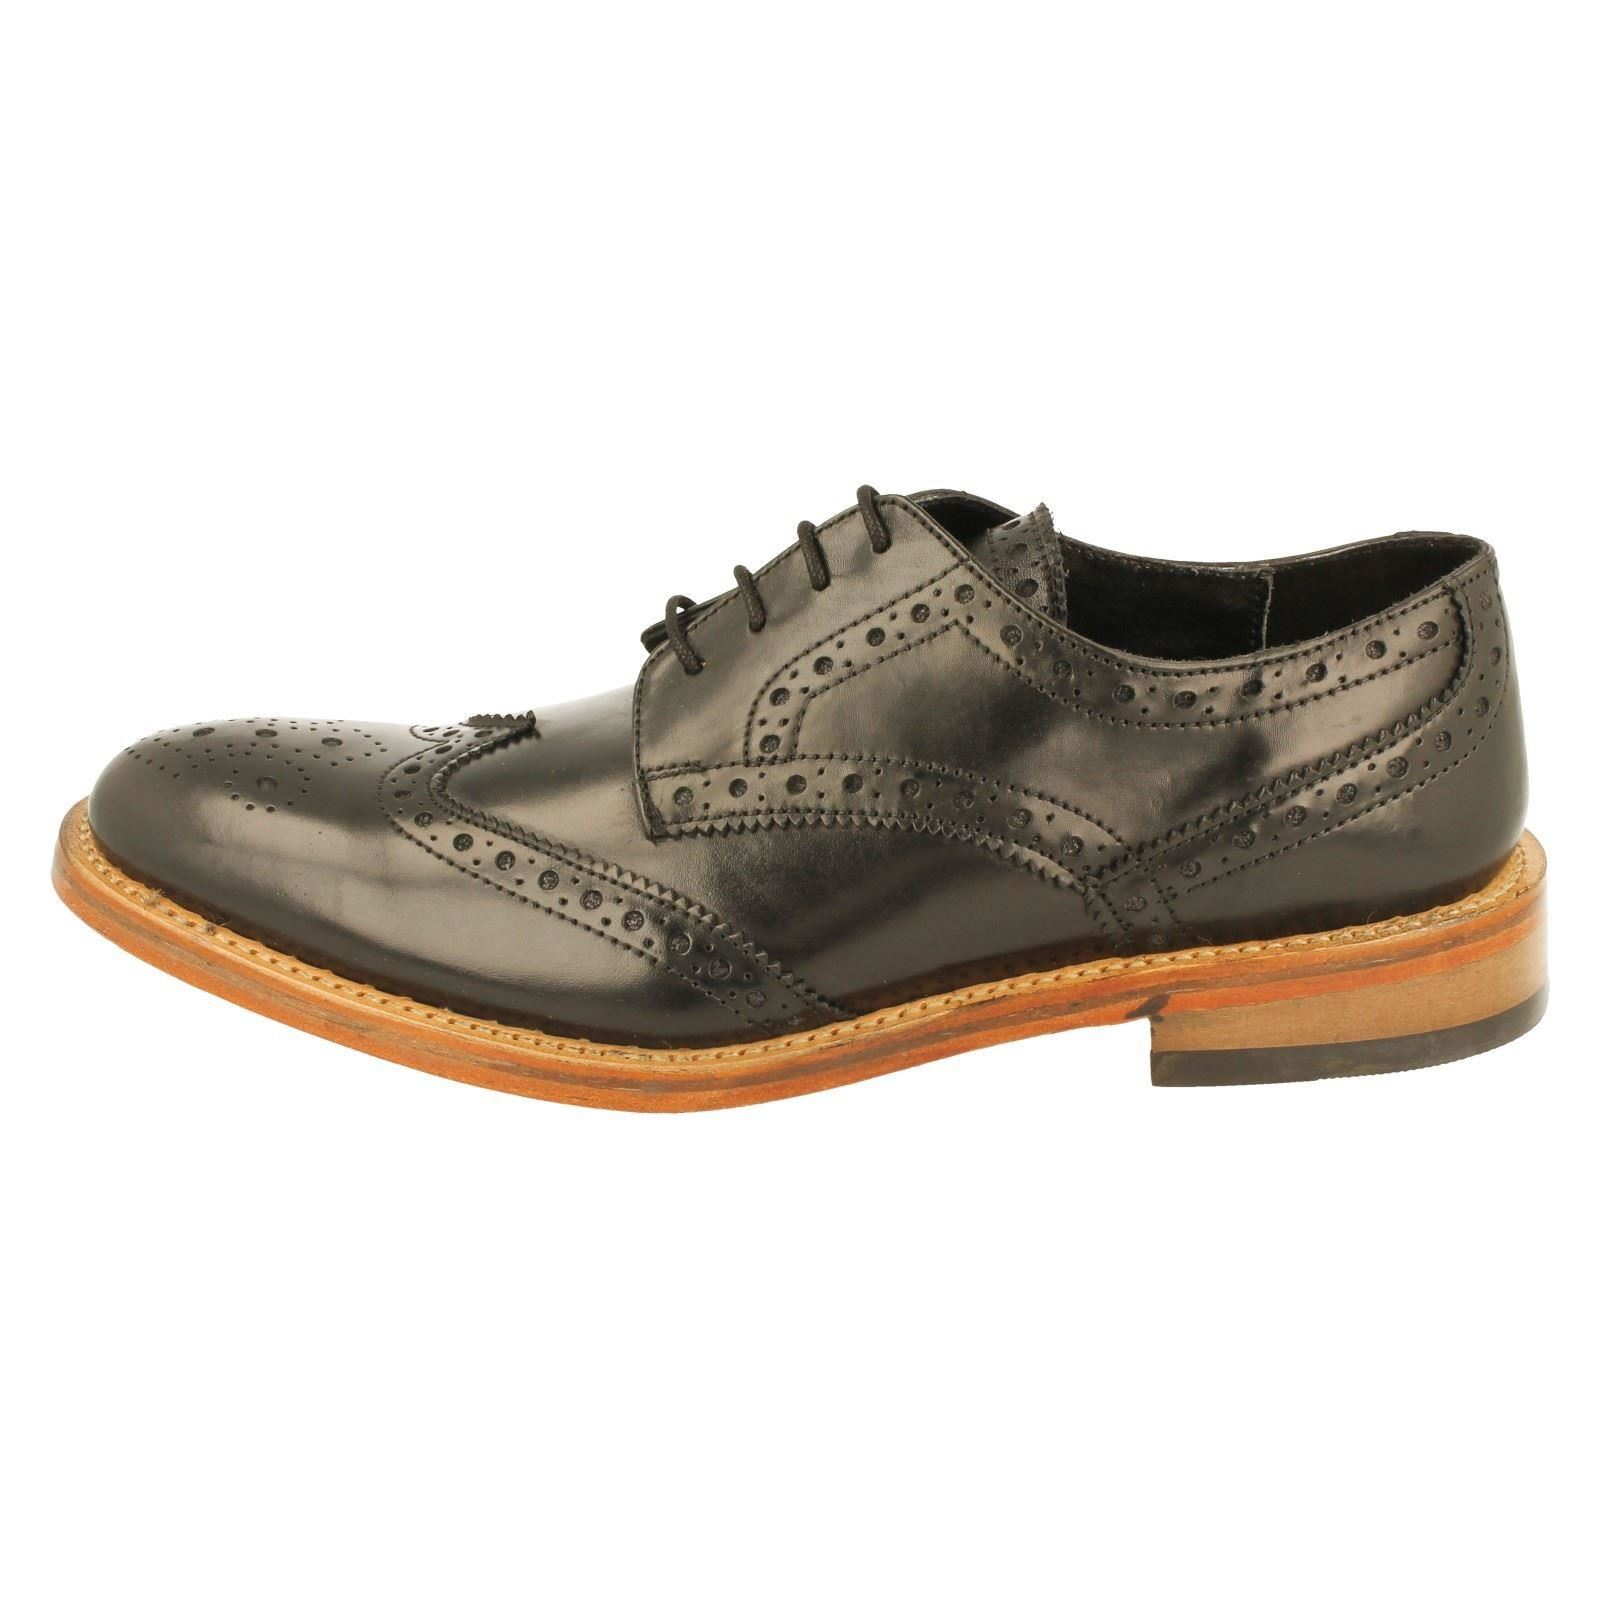 Mens Catesby Goodyear Welted Shoes Label Mcatessurryb-W